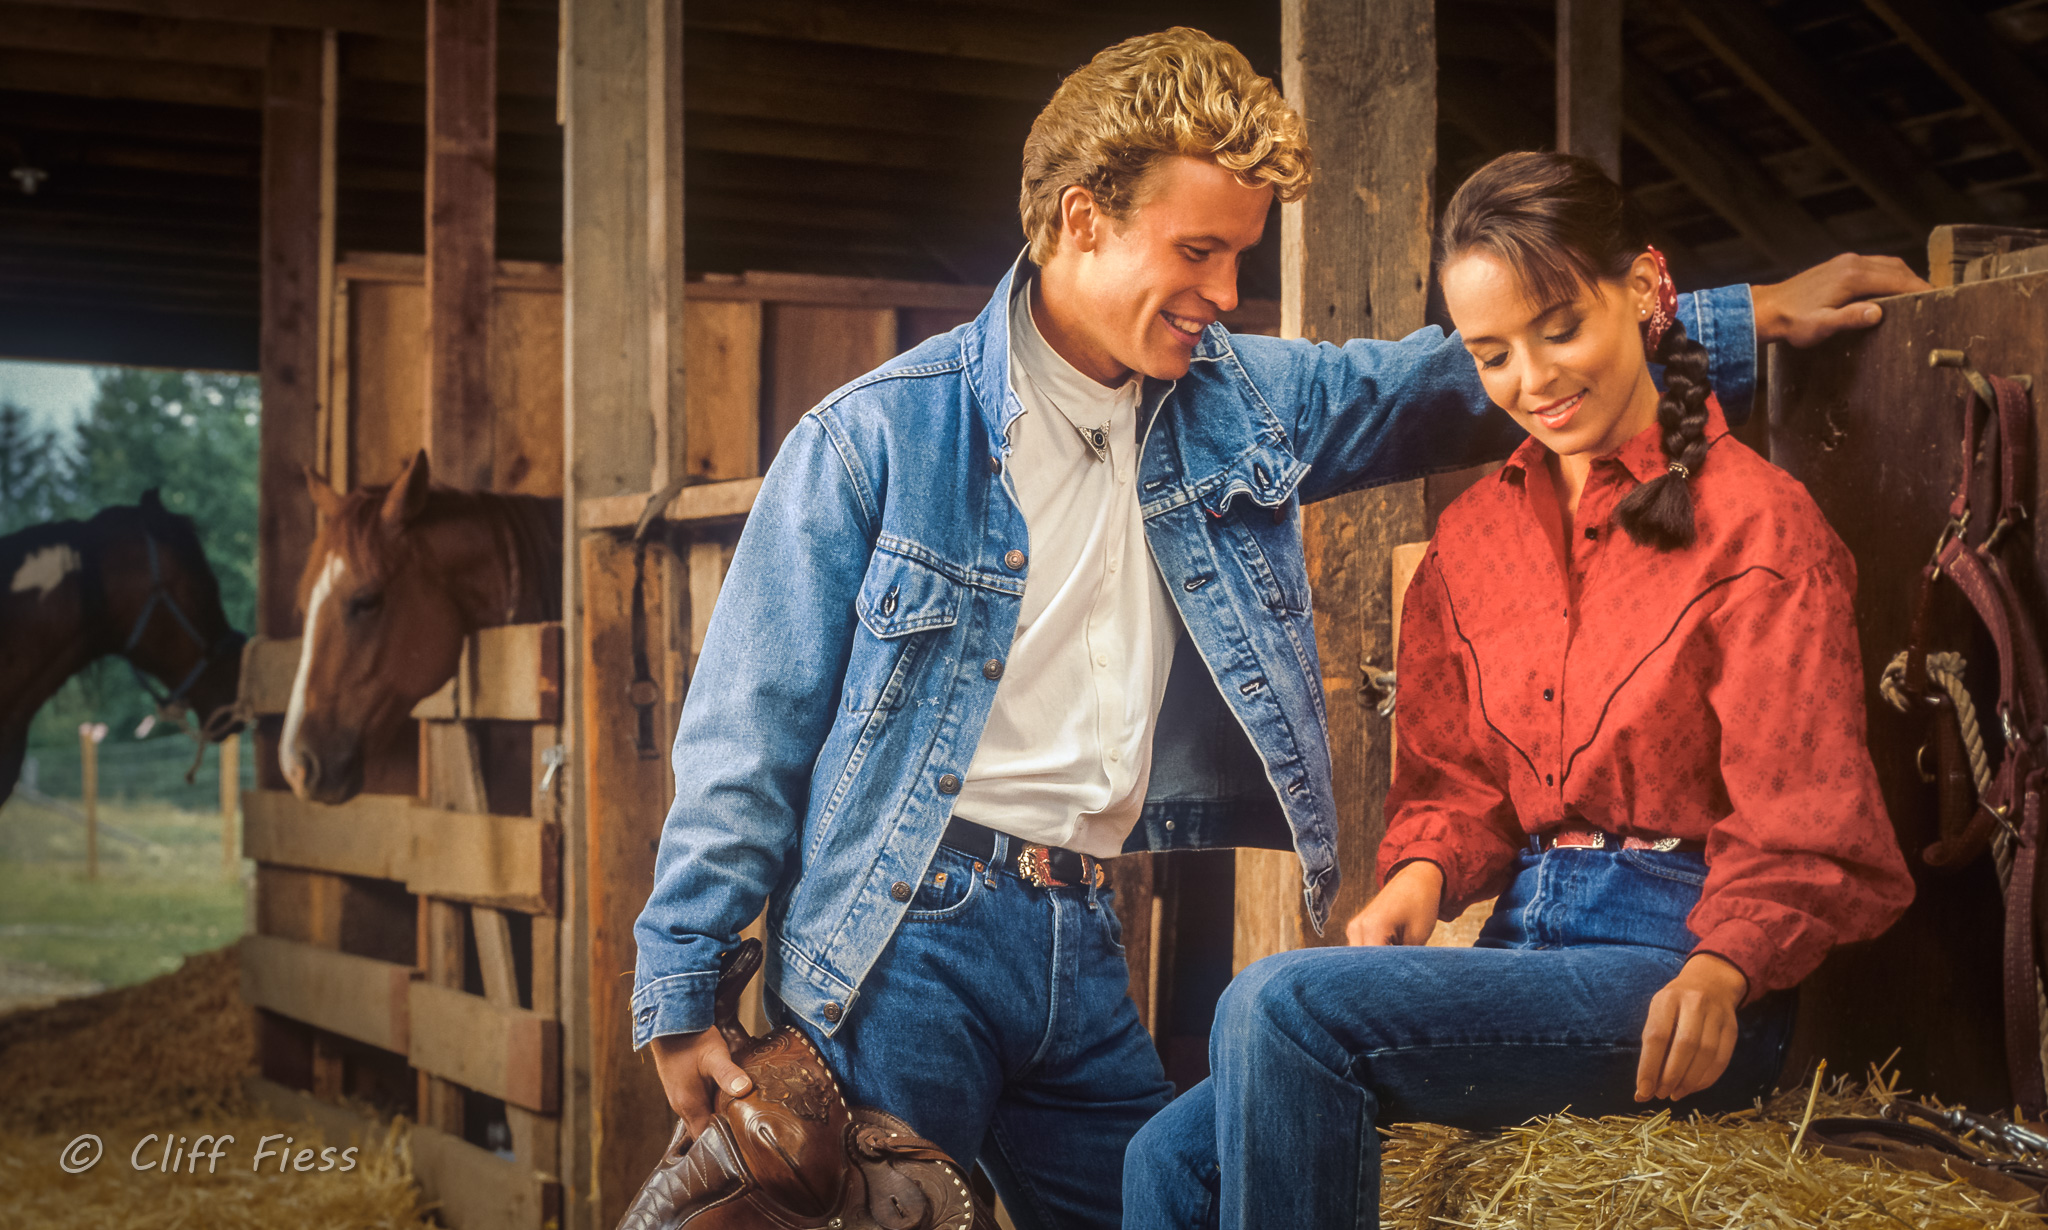 A cowboy and cowgirl